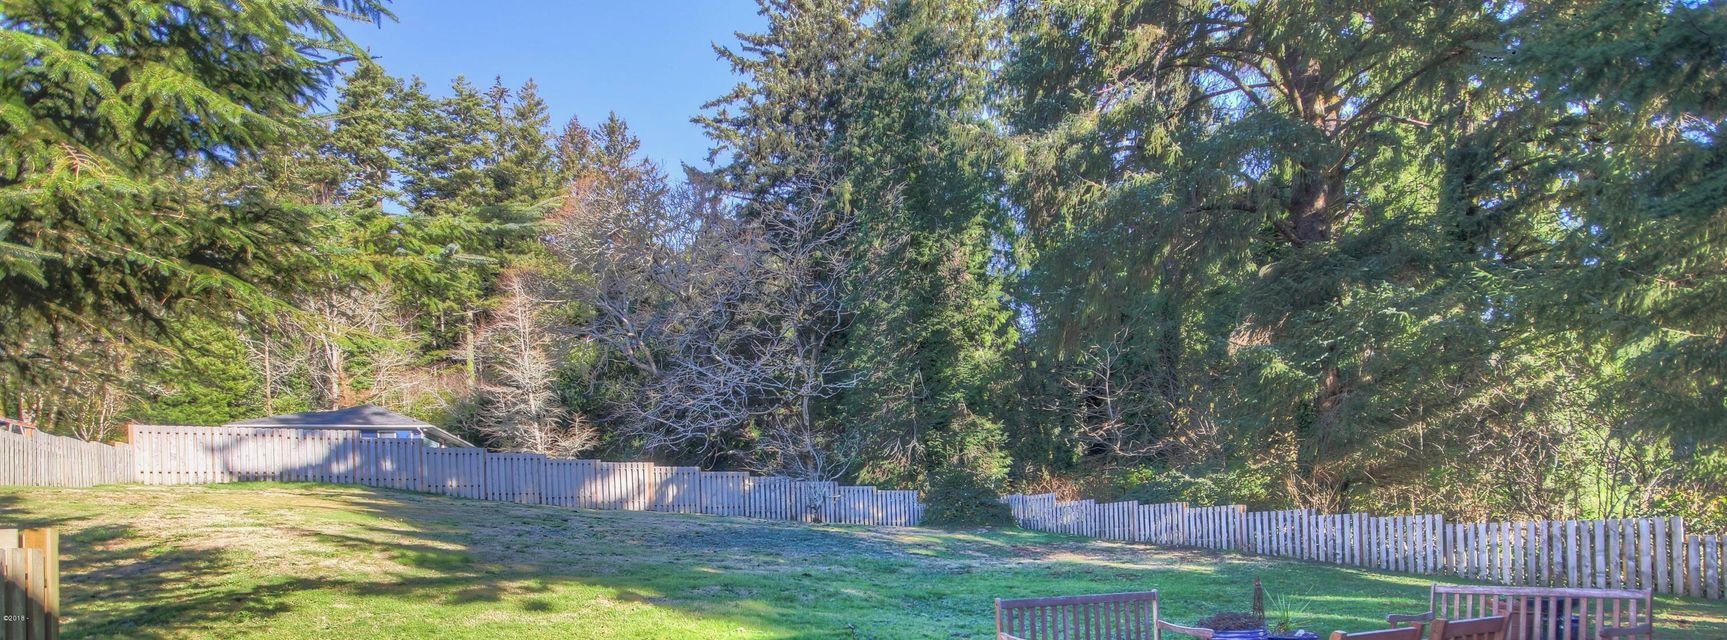 LOT 4 SE Larch St, Newport, OR 97365 - Partially Fenced